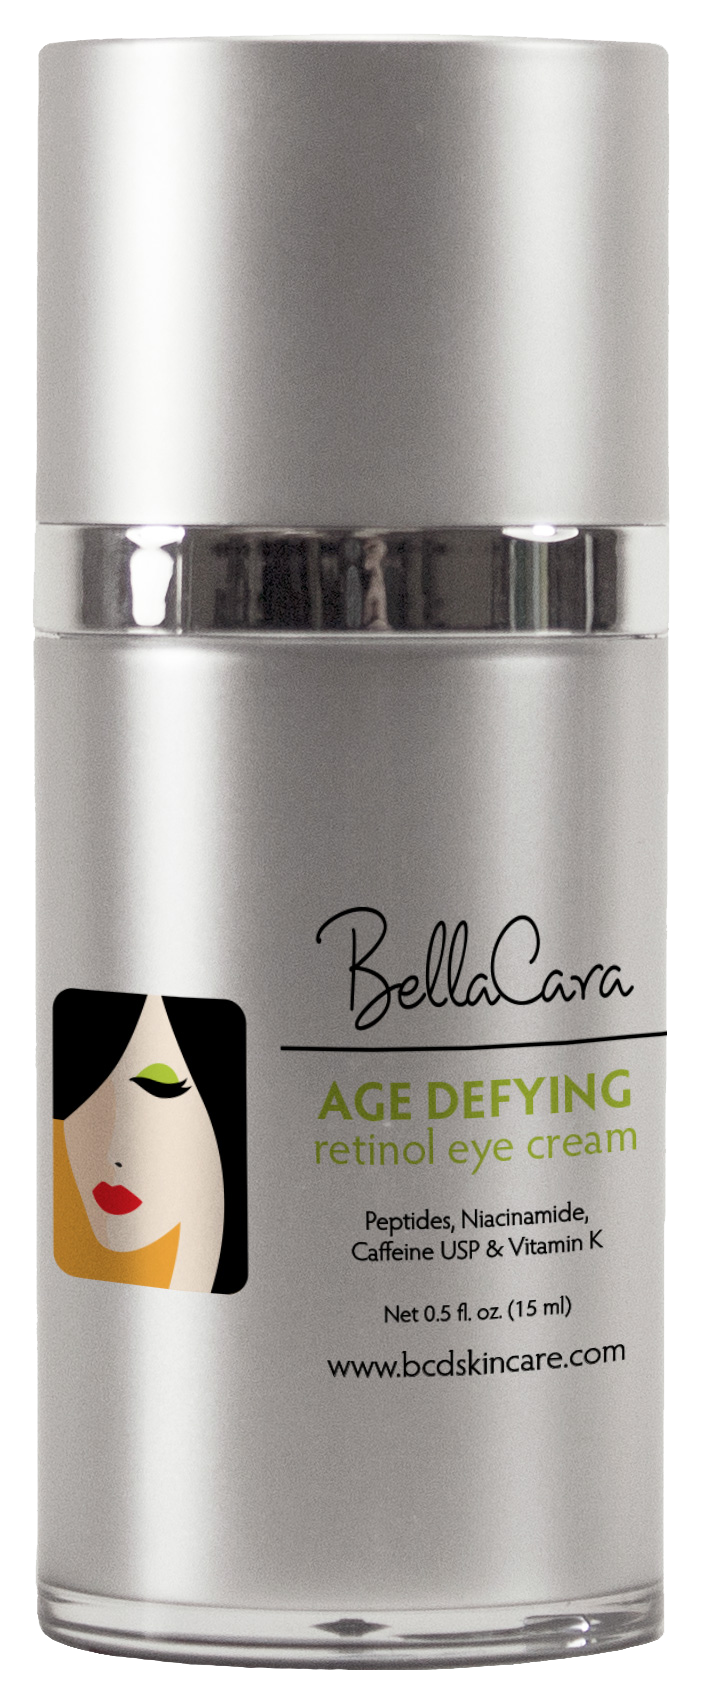 Age Defying Retinol Eye Cream.png